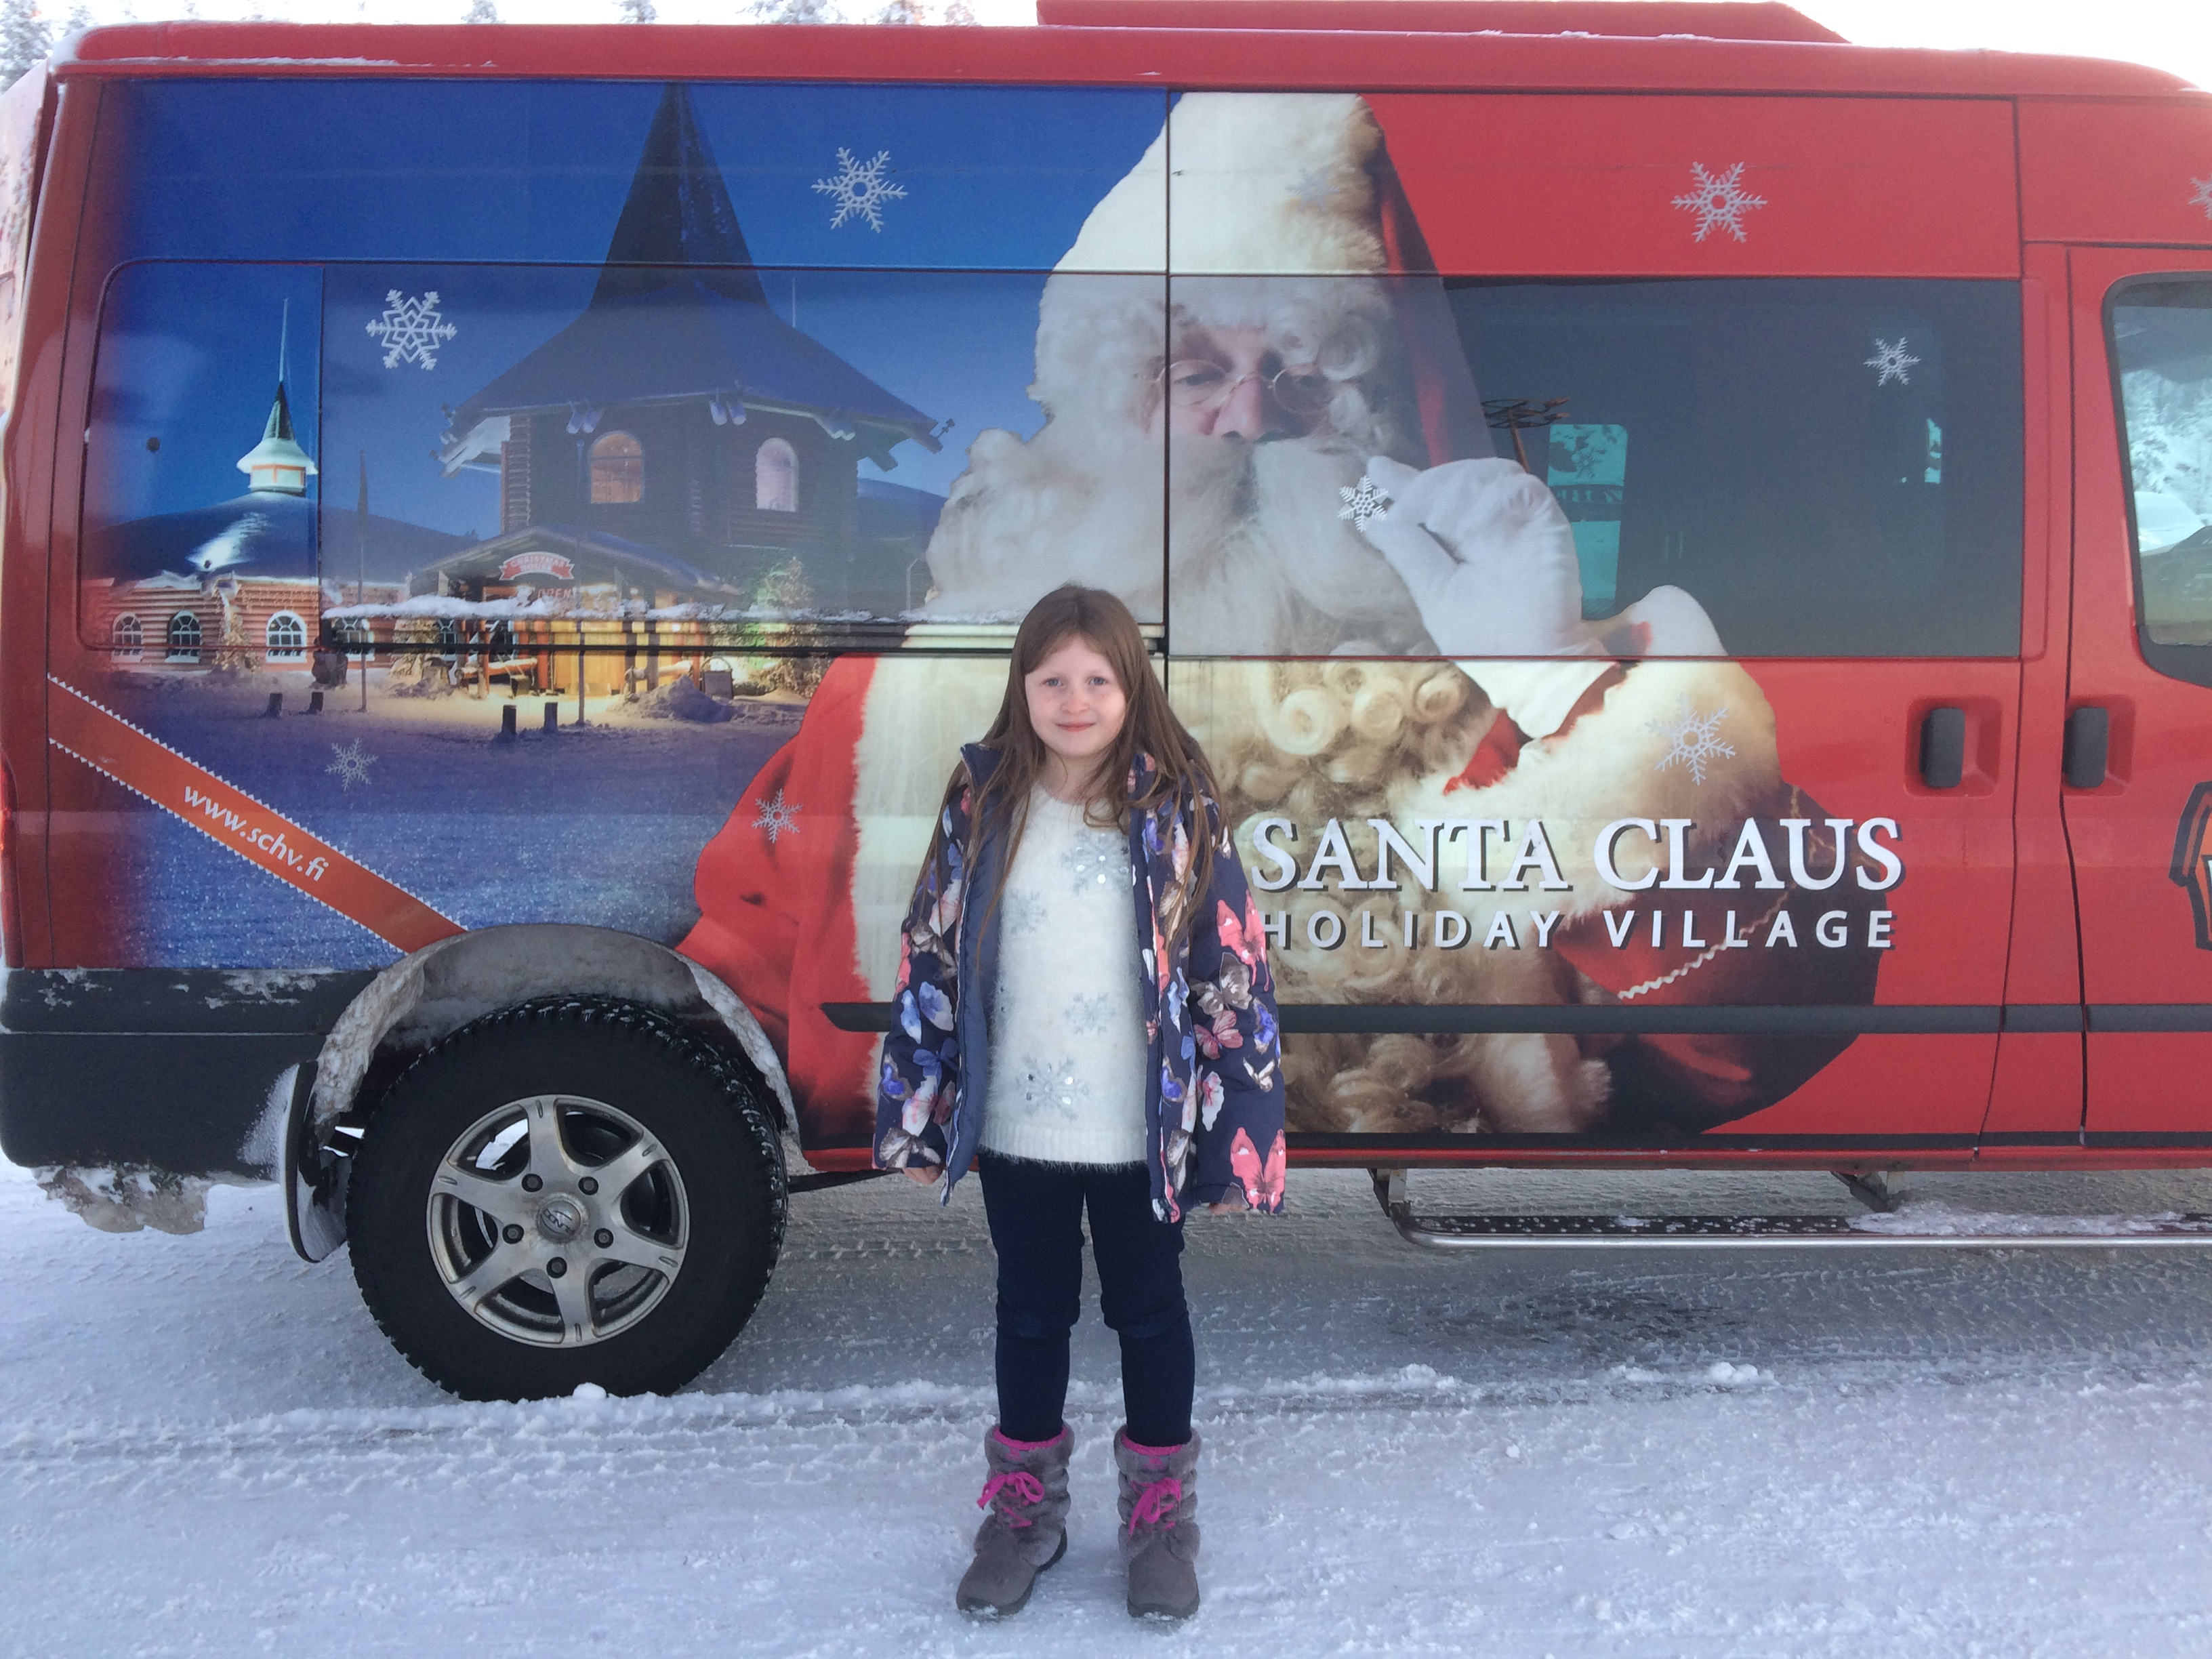 Santa's Airport transfer bus from the Santa Claus Holiday Village in Rovaniemi, Finland